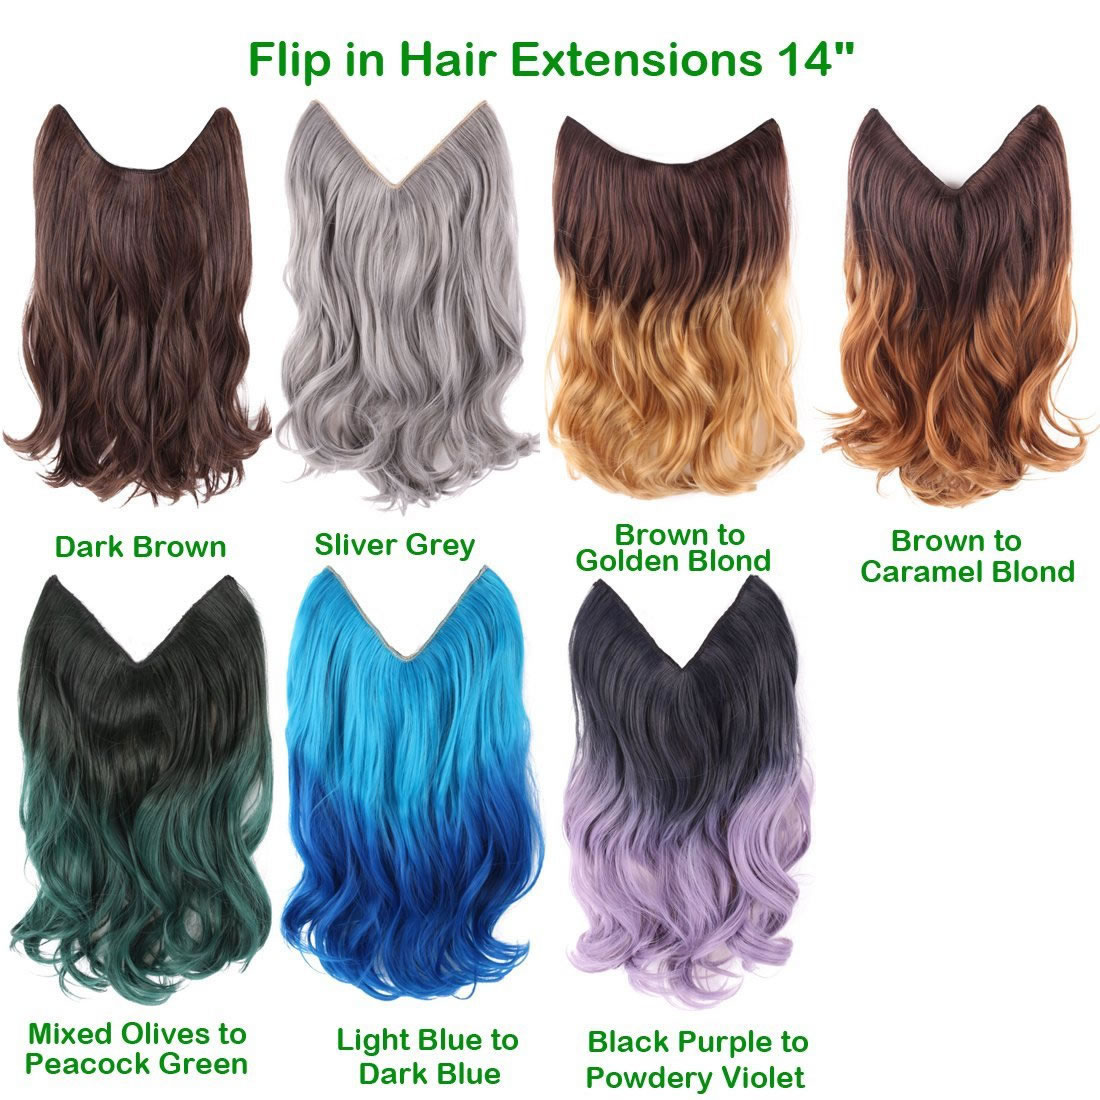 Flip in secret miracle wire hair extensions 14 inch brown to color chart nvjuhfo Image collections